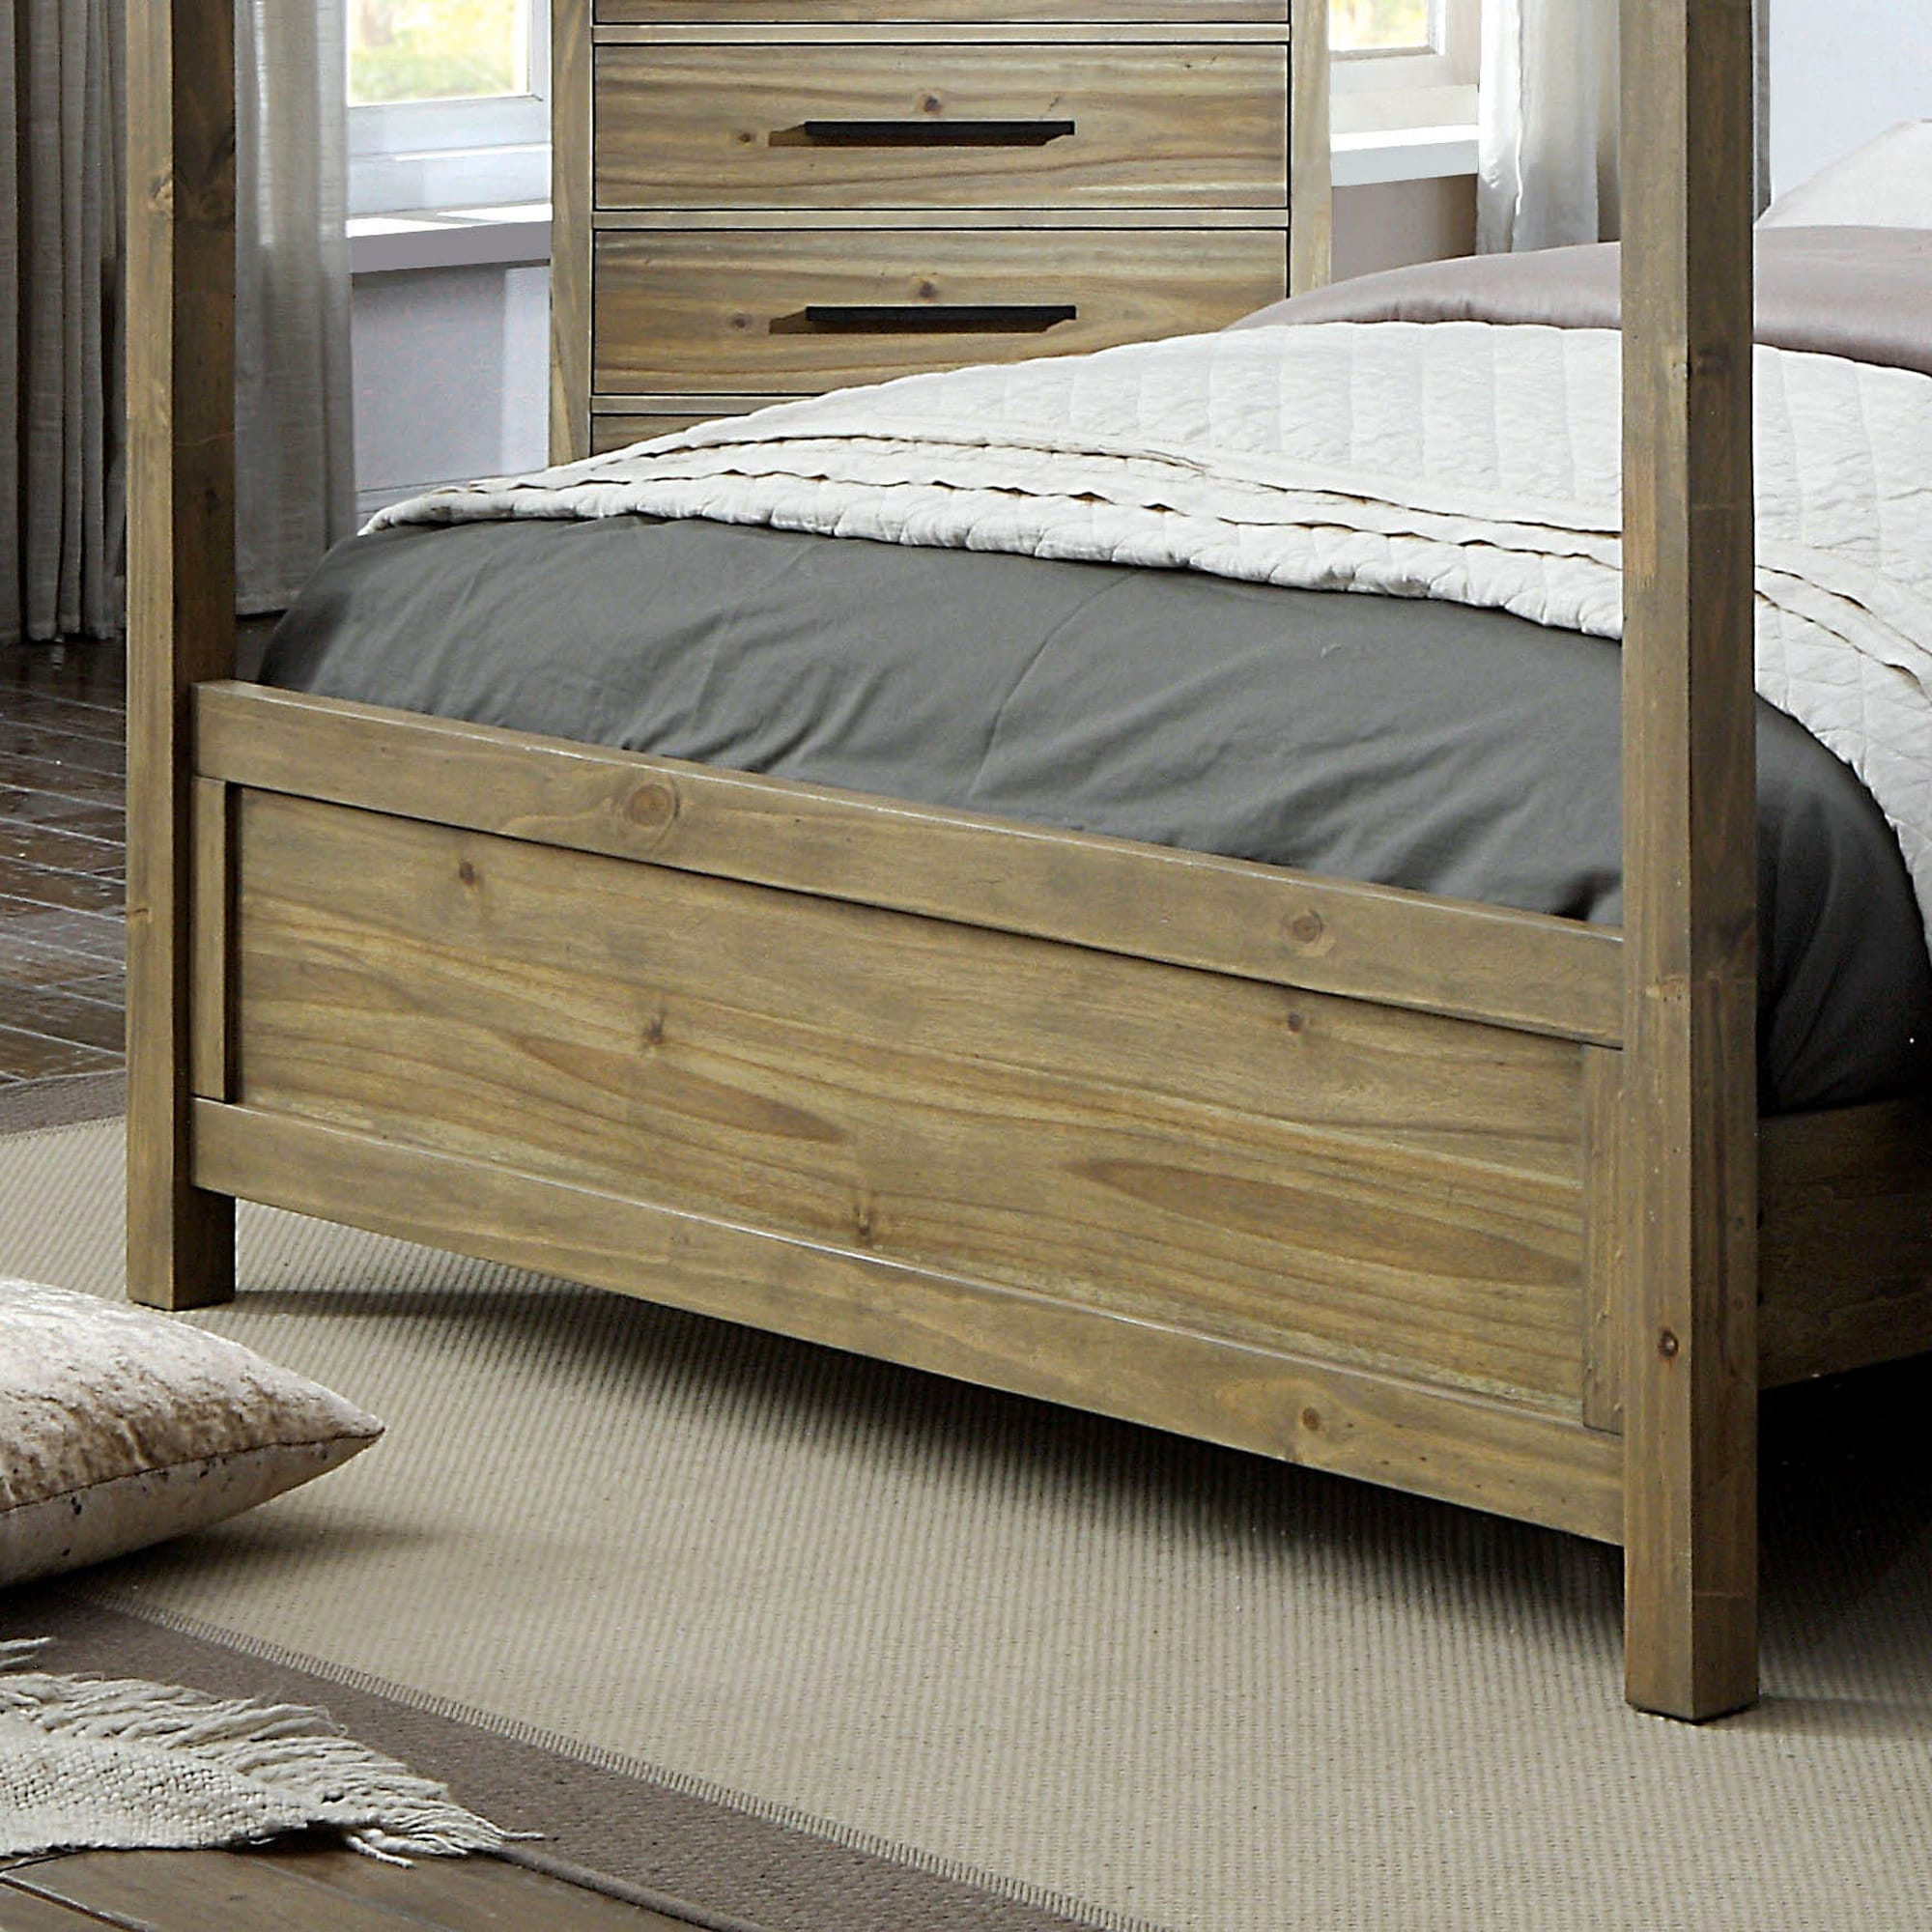 Shop Furniture of America Holstead I Rustic Light Oak Wooden Canopy Bed - On Sale - Free Shipping Today - Overstock.com - 20879242 & Shop Furniture of America Holstead I Rustic Light Oak Wooden Canopy ...